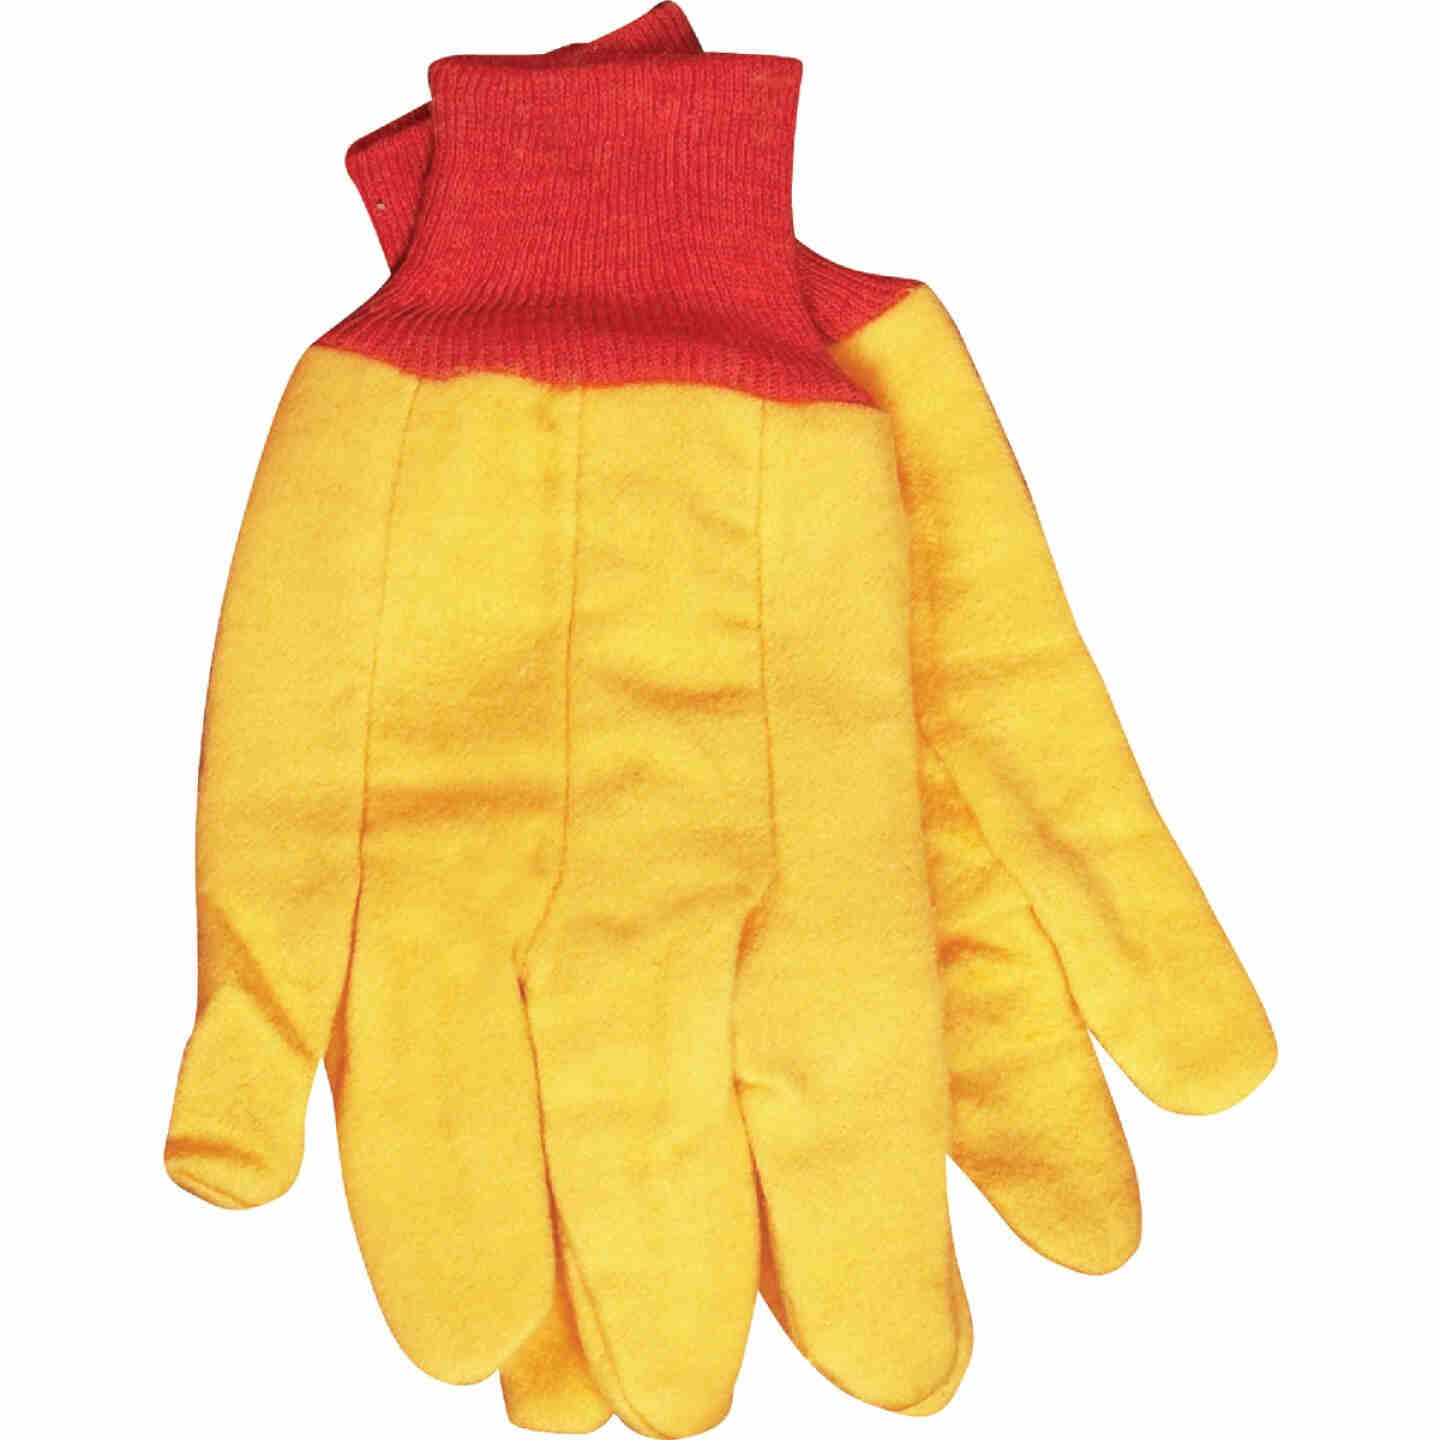 Do it Men's Large Fleece Chore Glove Image 1